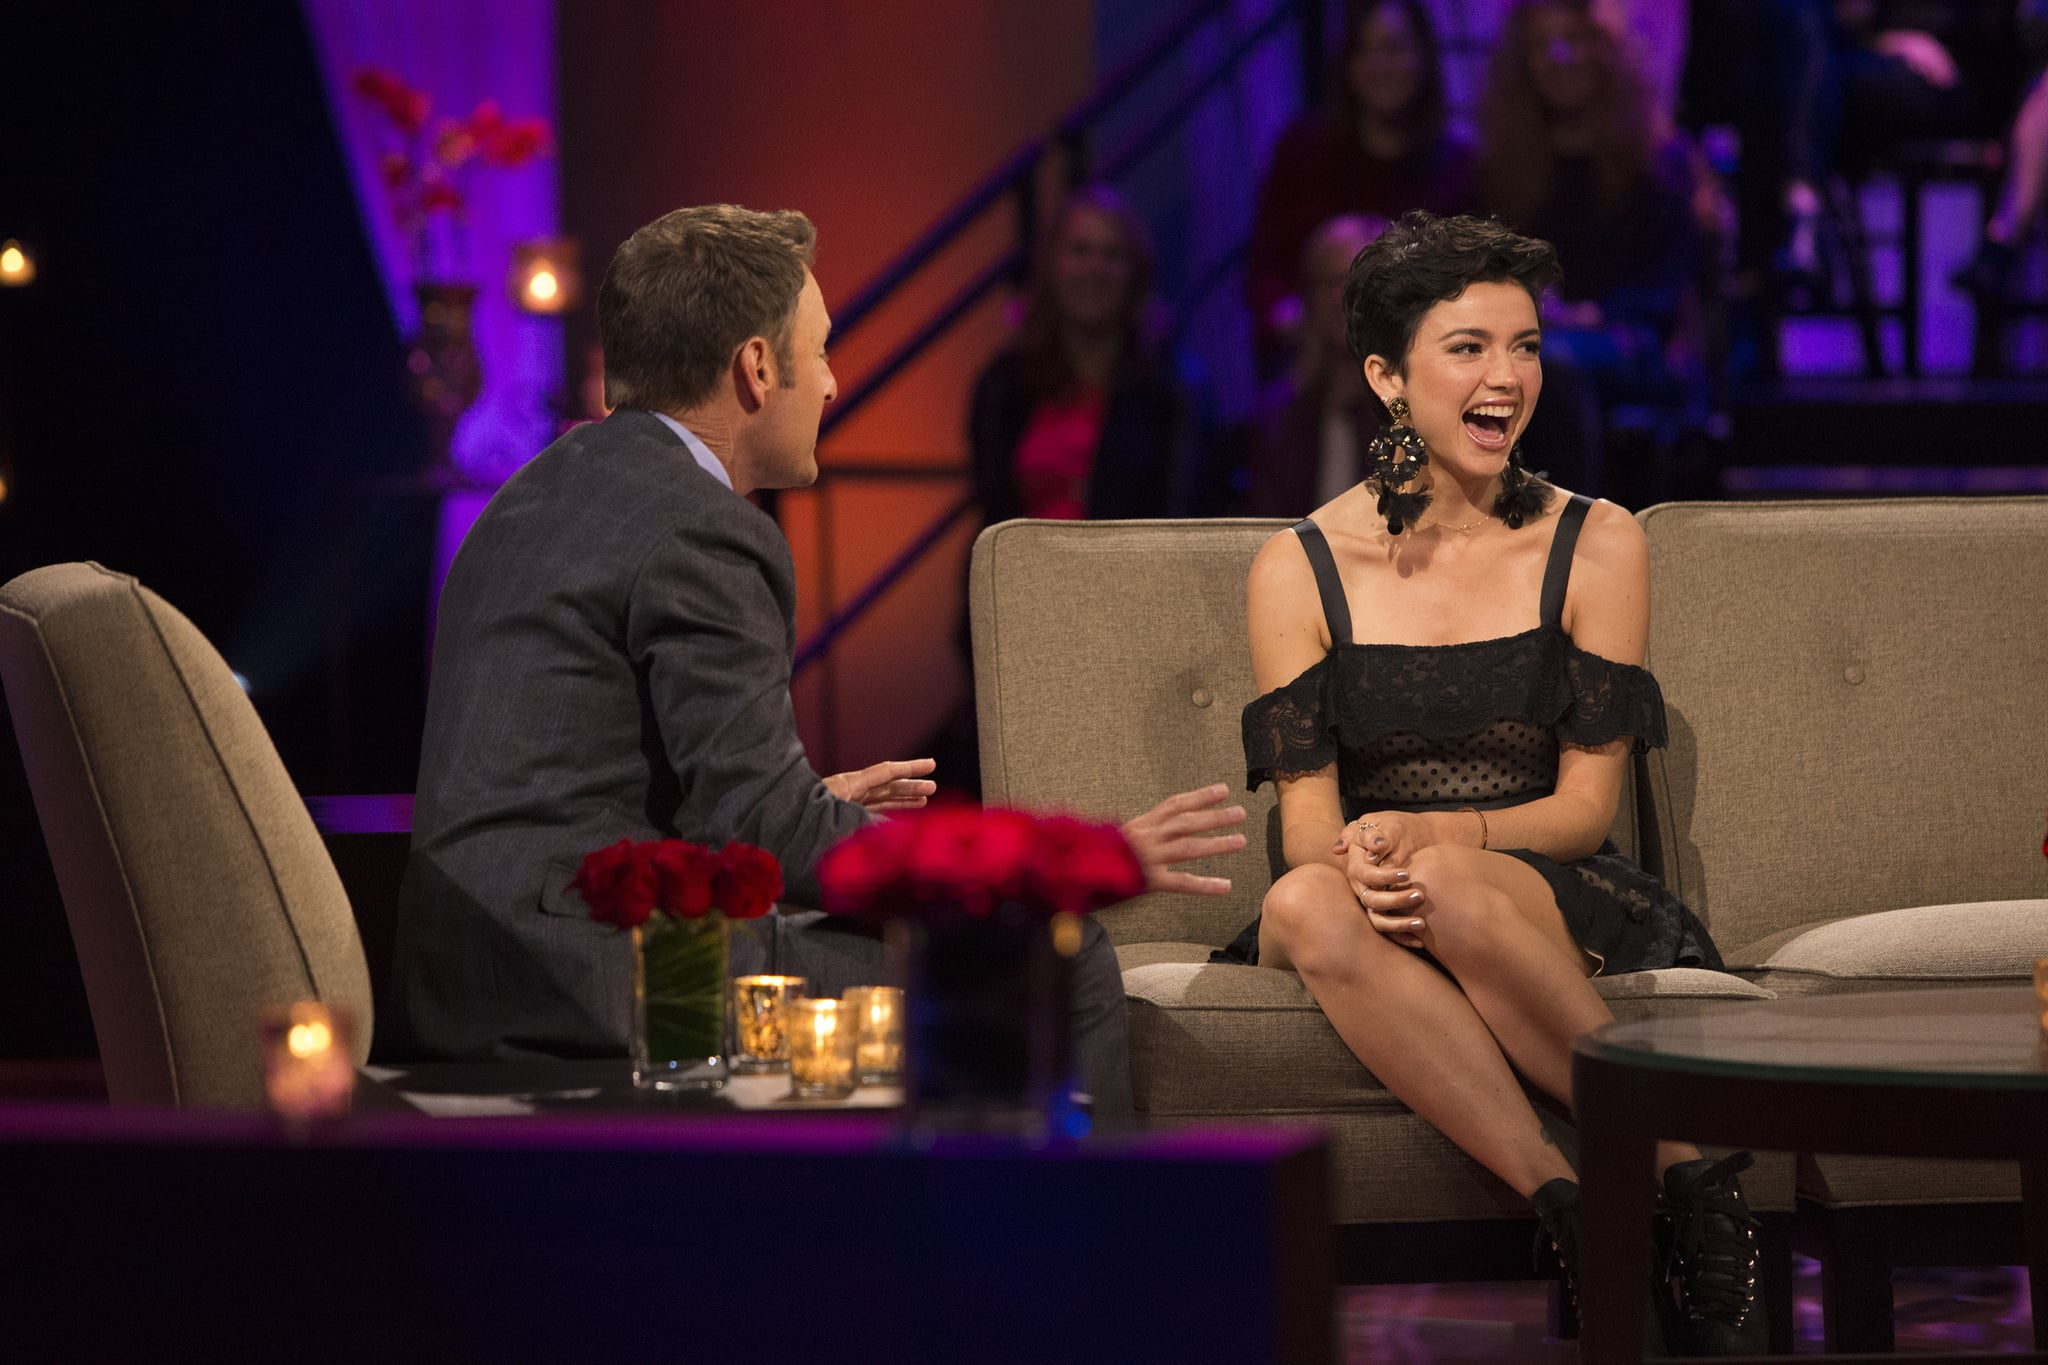 THE BACHELOR - The Bachelor: The Women Tell All - Arie Luyendyk Jr.s search for love has taken him from Los Angeles to Peru. Along the way there have been highs and lows - and then there was Krystal, one of the most controversial bachelorettes of the group. Now, 18 of the most unforgettable women this season are back to confront Arie and tell their side of the story and how difficult it was to date a Bachelor who was falling for multiple women. Krystal attempts to defend her behavior, but a never- seen clip from the bowling alley date reveals her calling out the women and Arie with shocking words. Bekah M. admonishes Tia for going behind her back to Arie about her age. Look back at some of the most memorable moments in The Bachelor: The Women Tell All history. Then, take a sneak peek at the dramatic conclusion to Aries search for love, on The Bachelor: The Women Tell All, SUNDAY, FEB. 25 (8:00-10:00 p.m. EST), on The ABC Television Network. (ABC/Paul Hebert)BEKAH